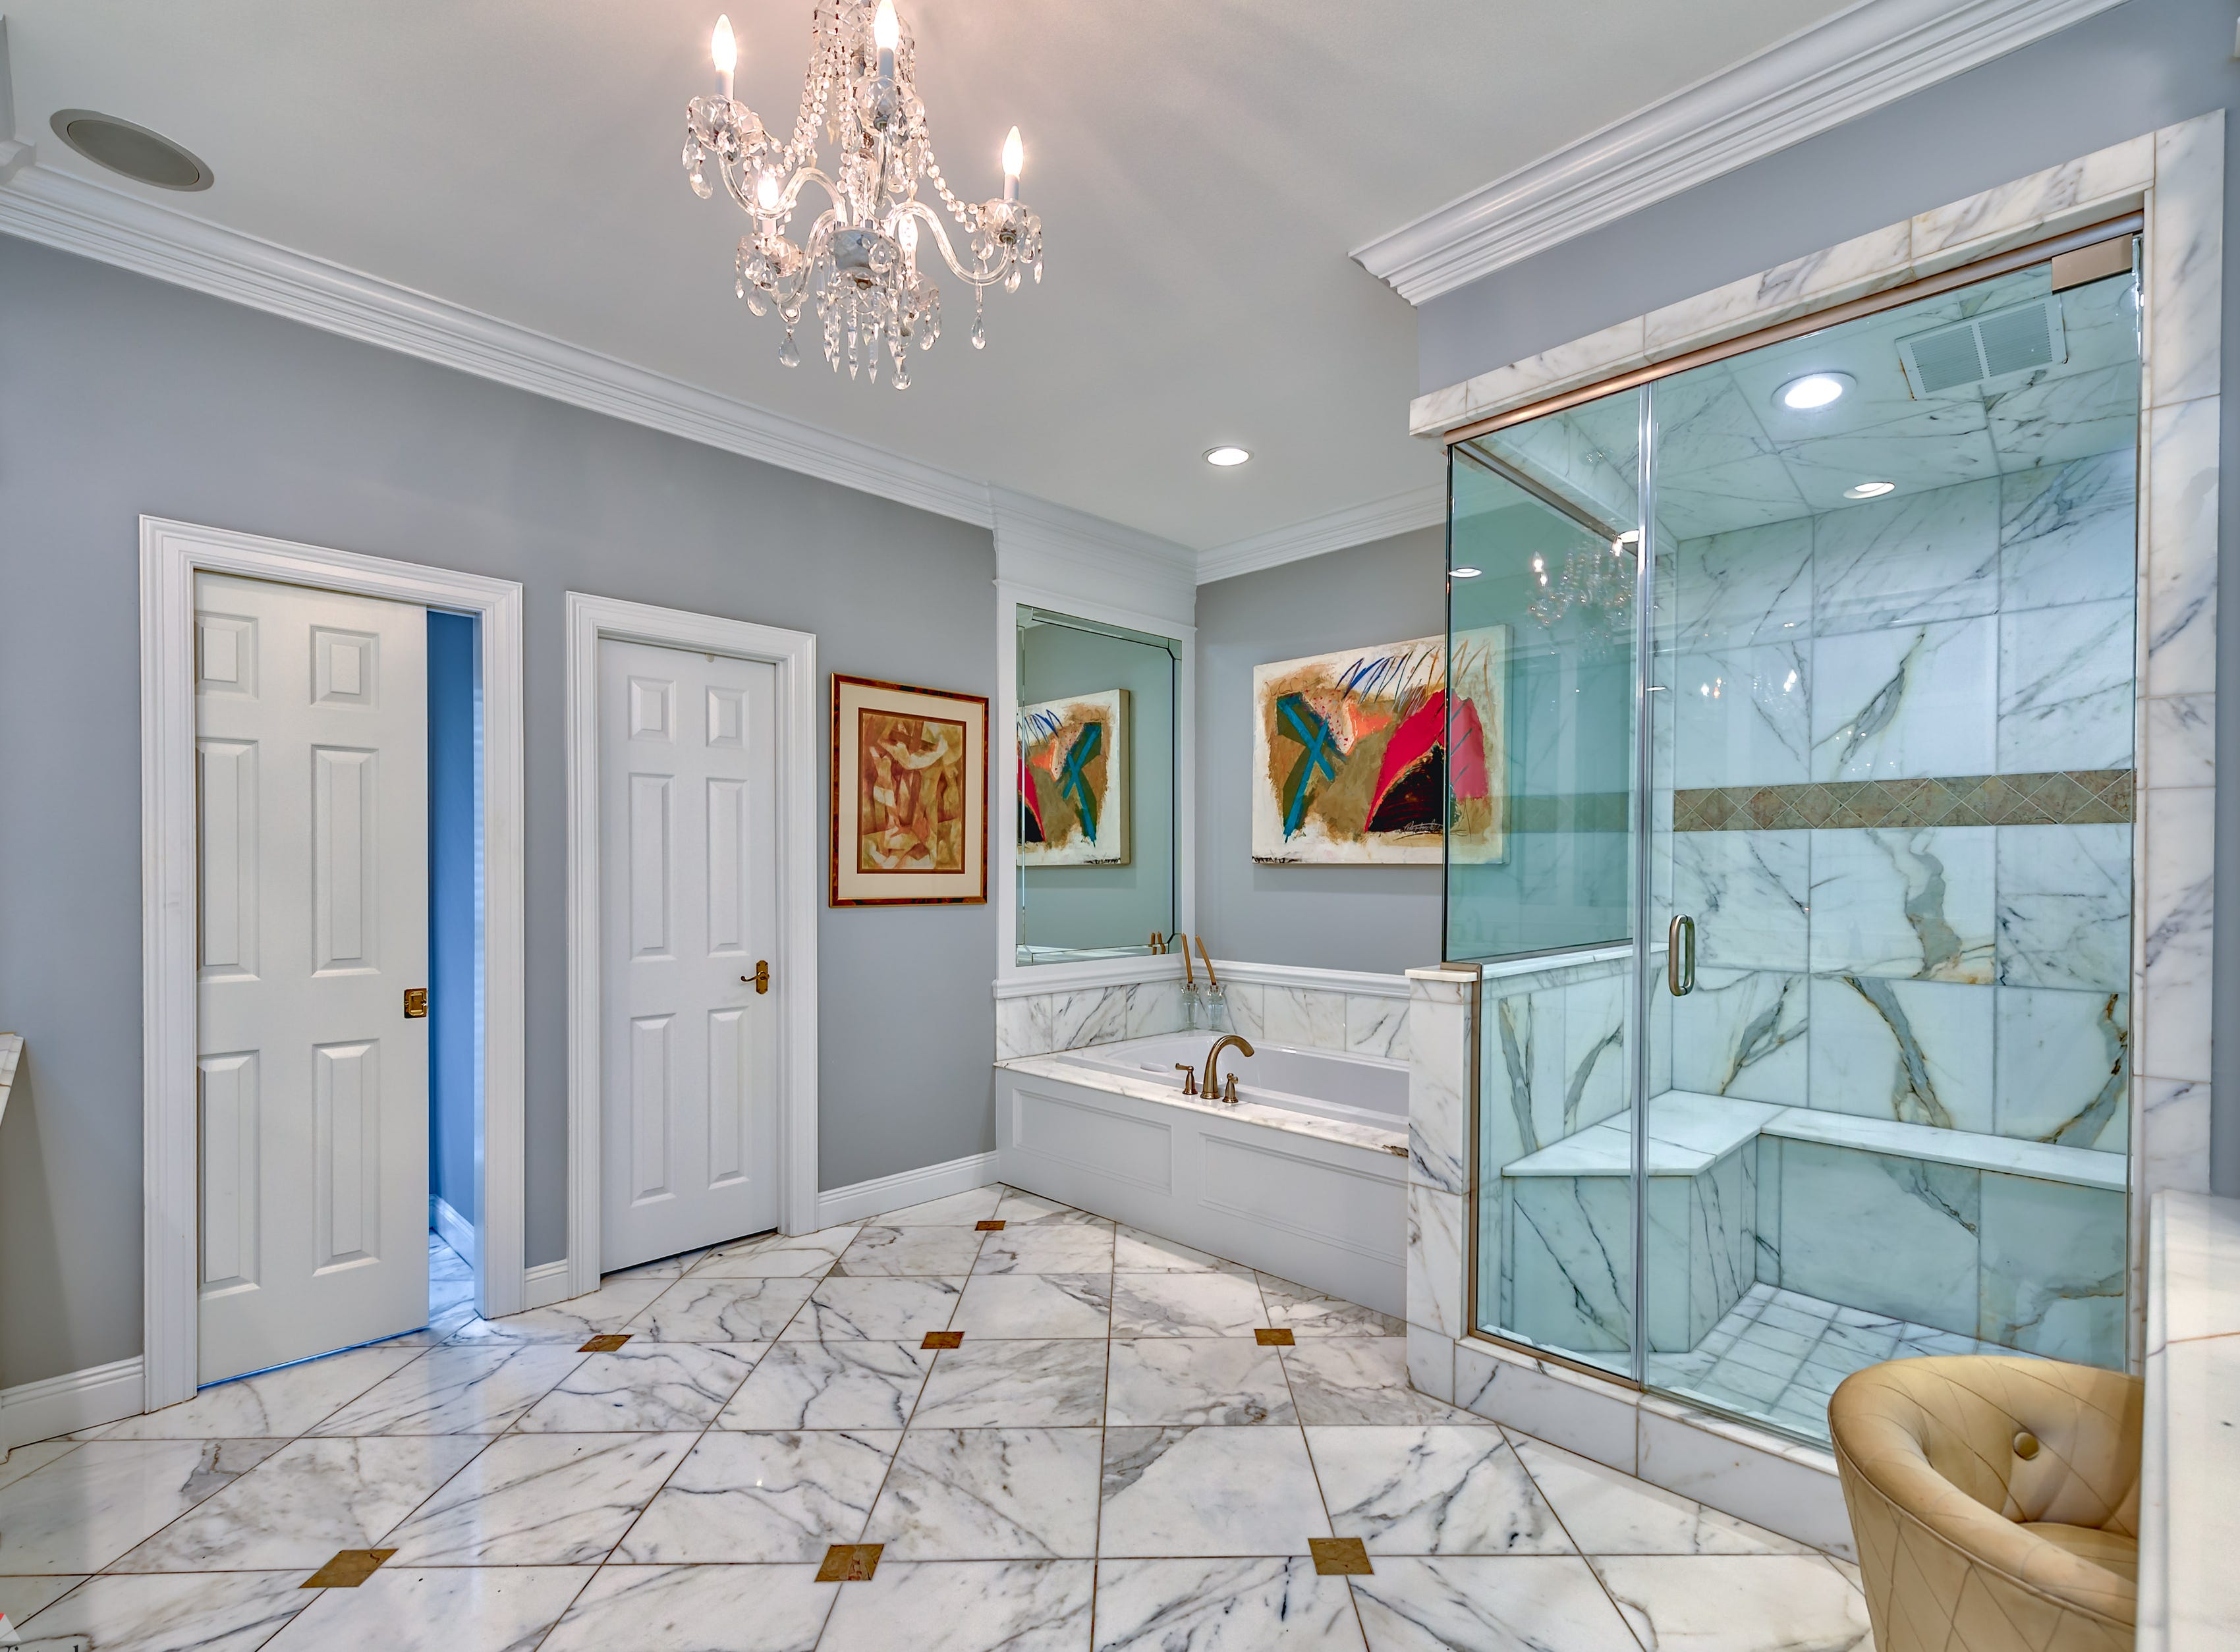 2718 Alvamar Drive, Shreveport  Price: $649,000  Details: 4 bedrooms, 5 bathrooms, 5,391 square feet  Special features: Elegant home on a large Long Lake lot perfect for entertaining, entry boasts marble flooring,  outdoor oasis with inground pool.  Contact: Lisa Hargrove, 393-1003